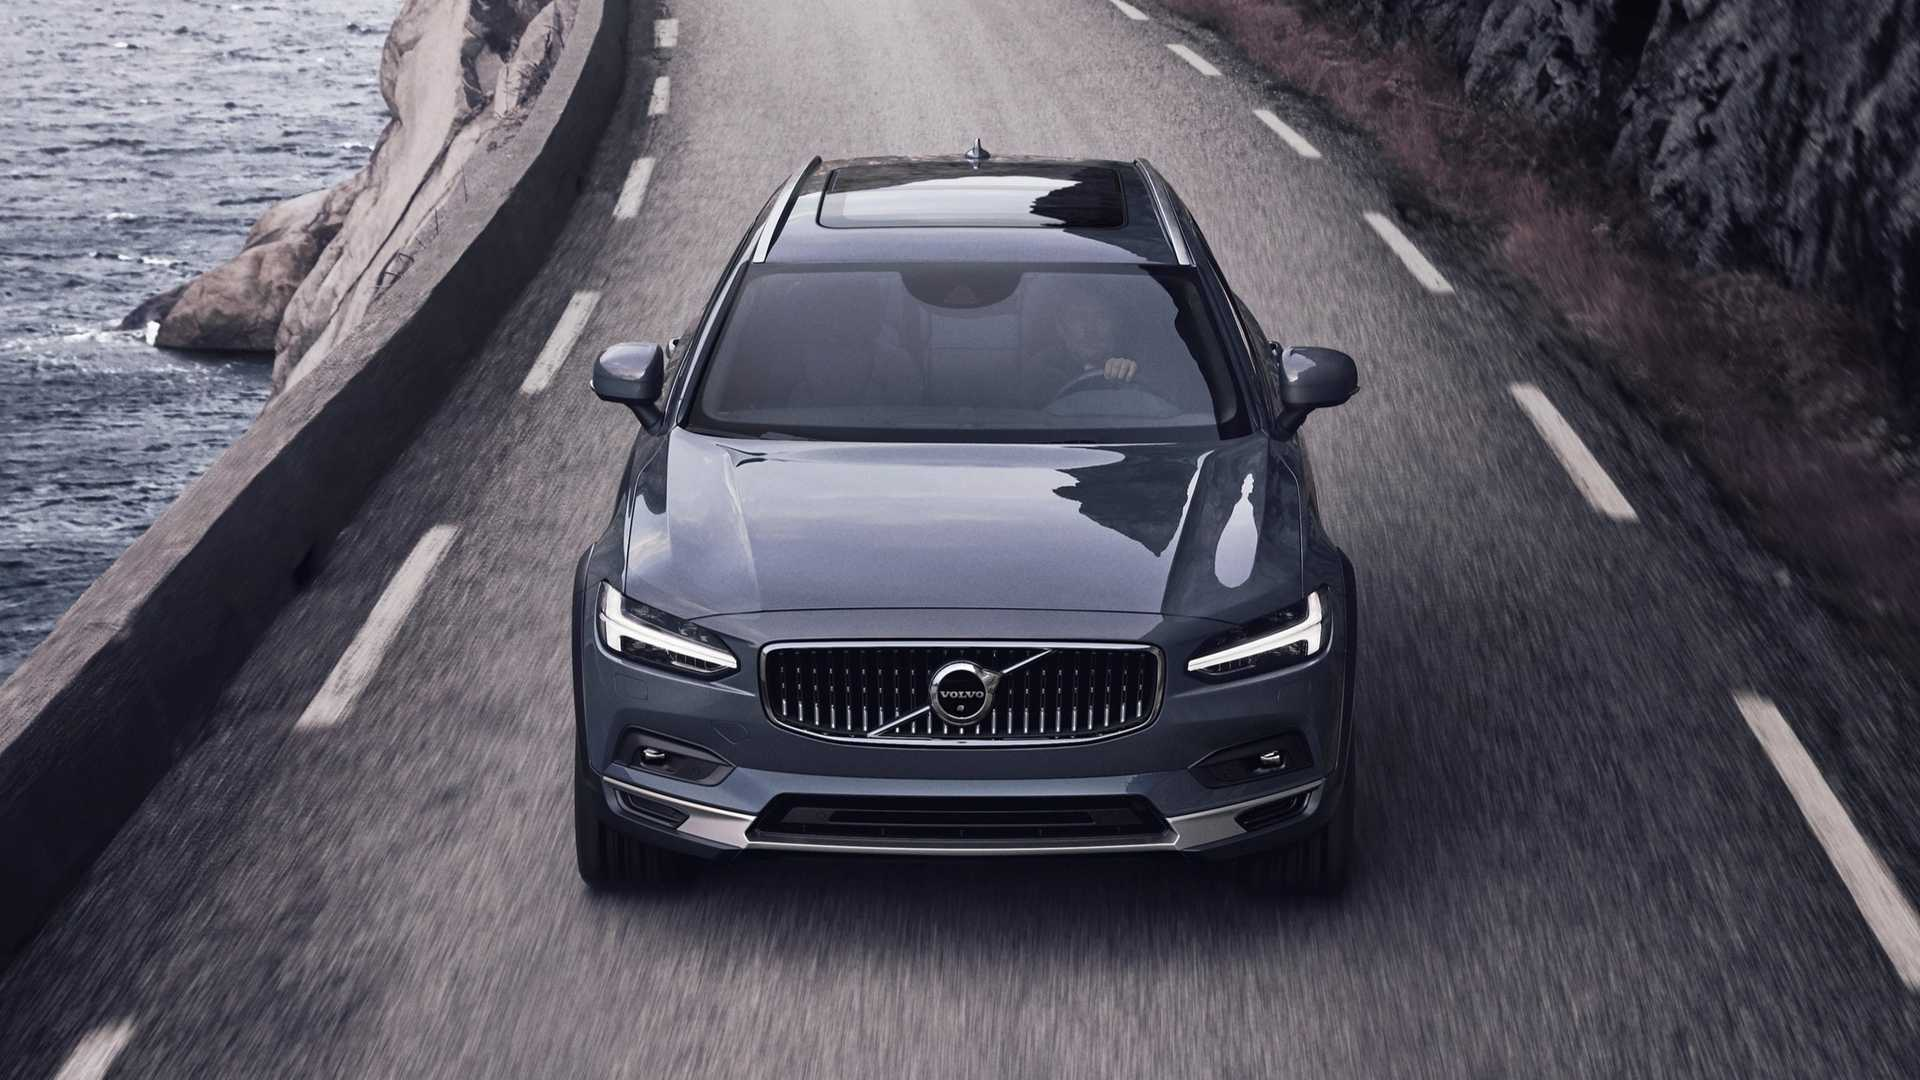 2020 Volvo S90 Concept and Review